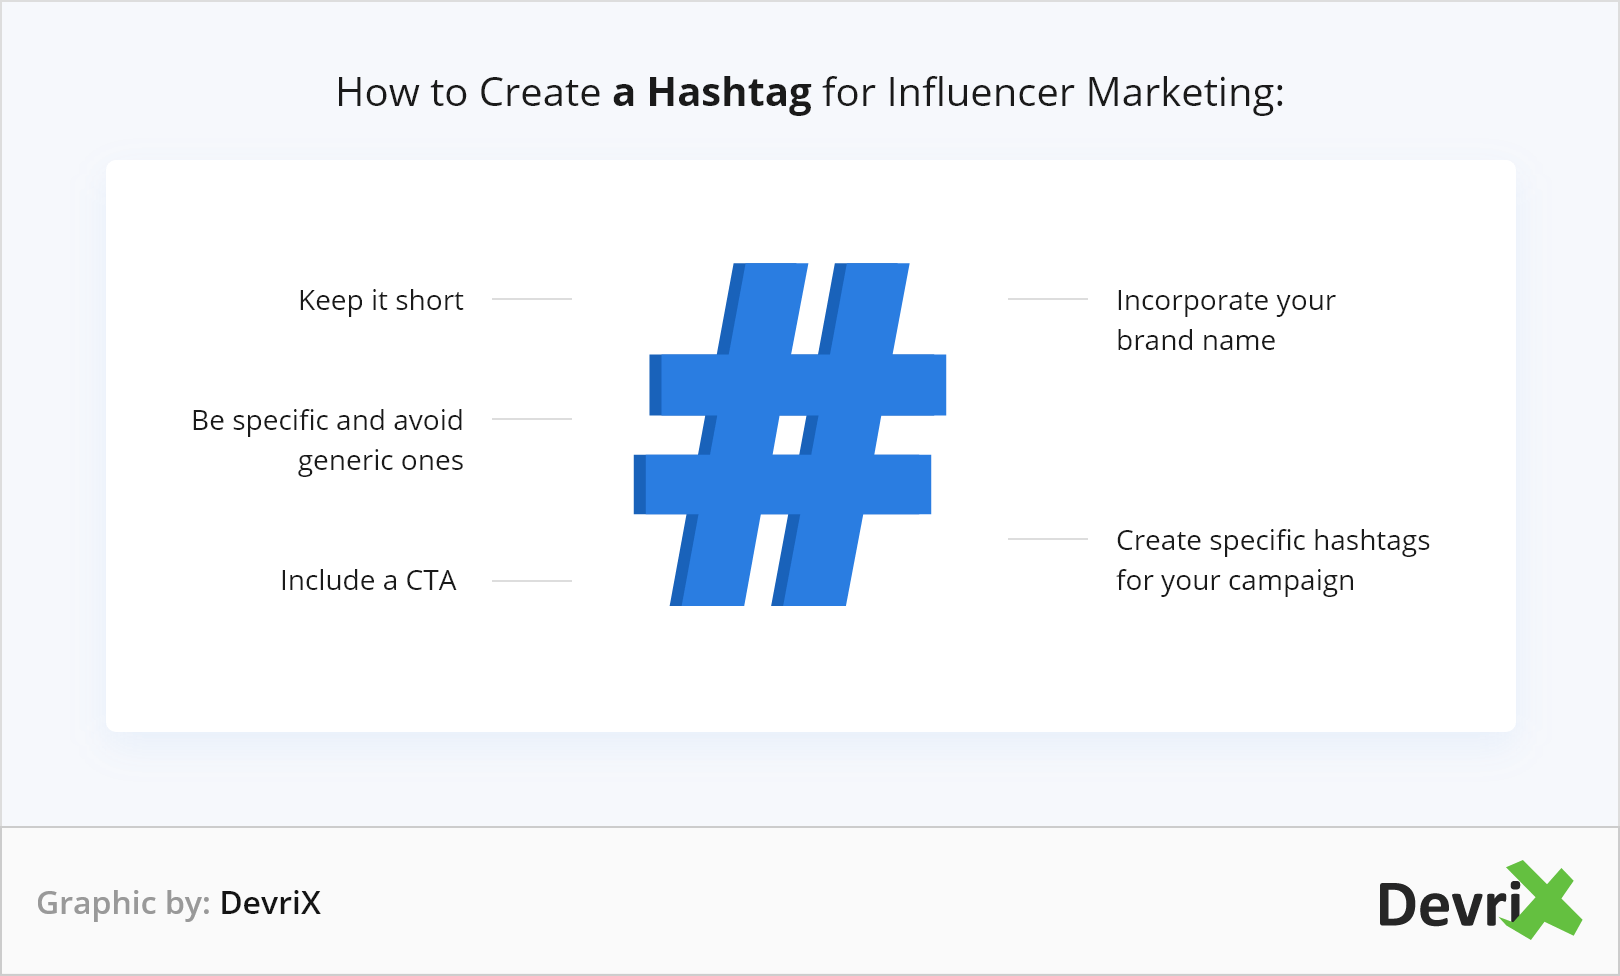 How to Create a Hashtag for Influencer Marketing